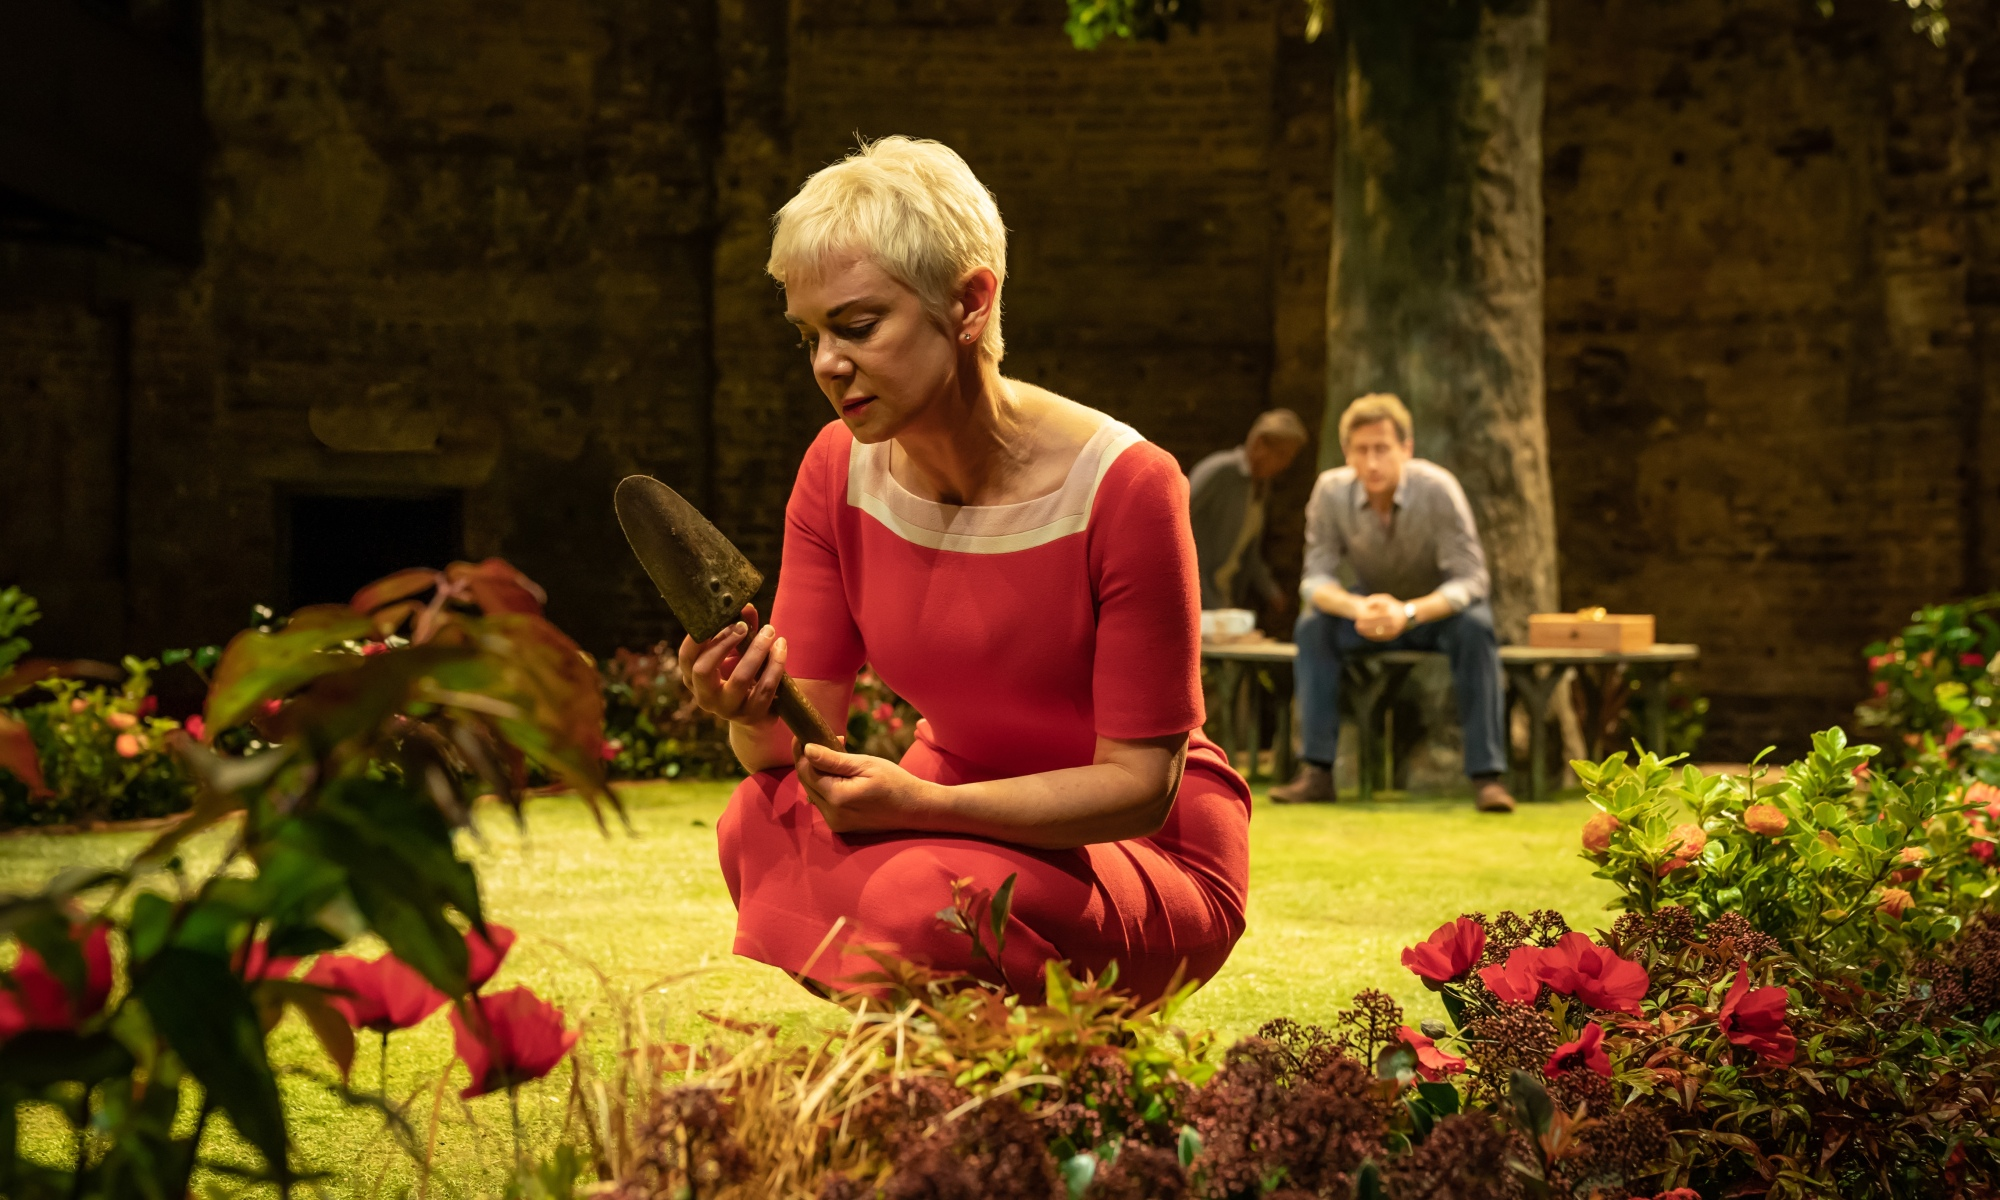 A woman wearing a red dress is in a garden holding a trowel. Flowers are all around her. In the background is a tree, and a man sits down on the wooden seating surrounding it.